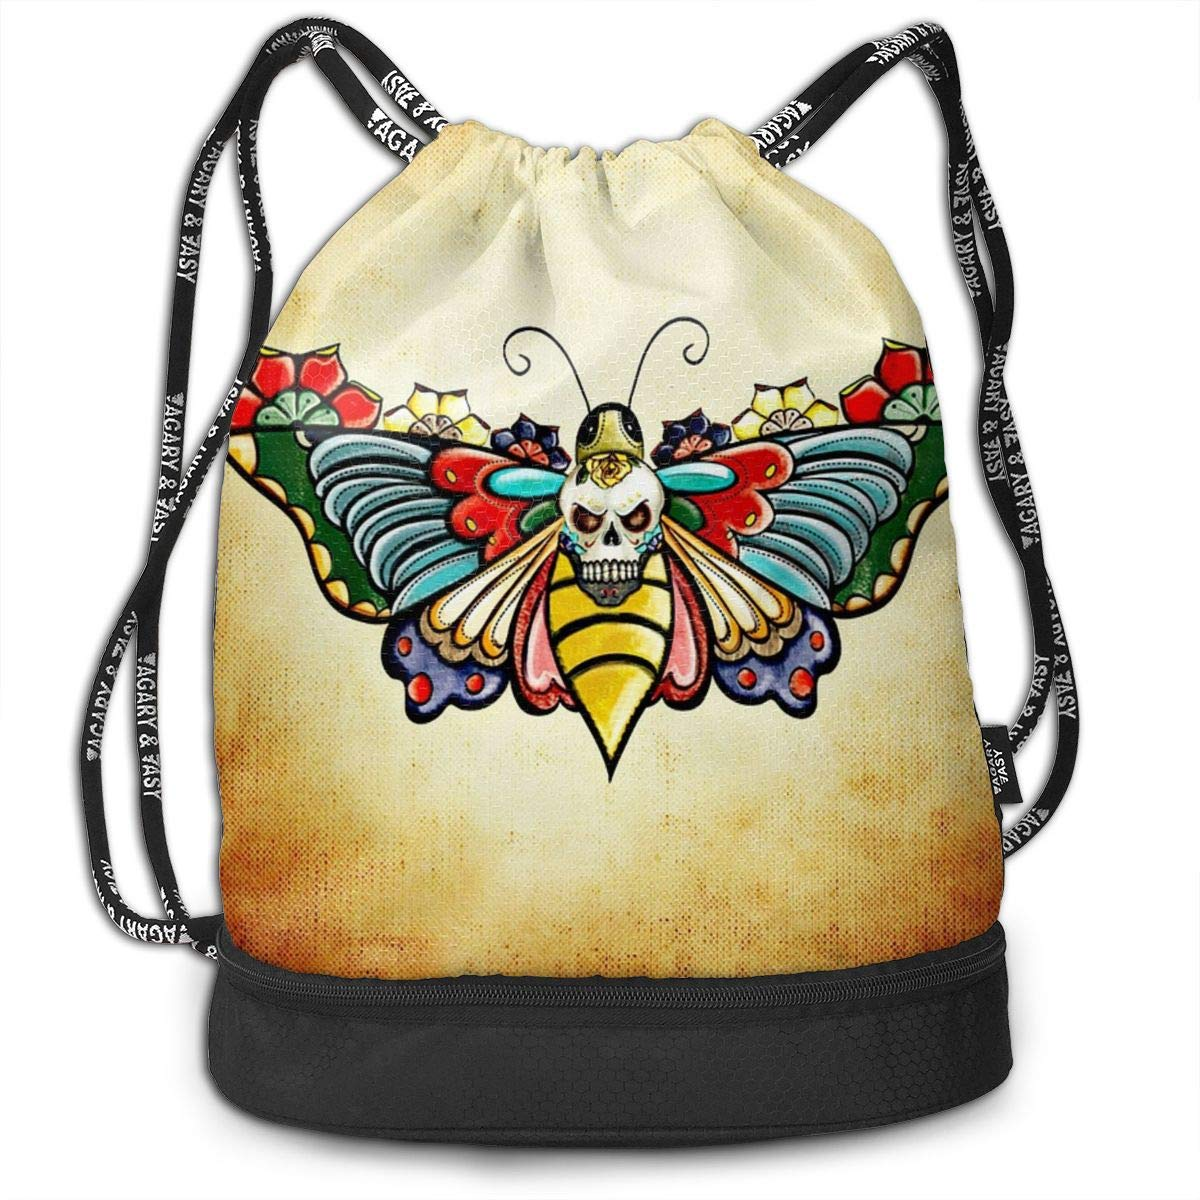 Butterfly Skull Classic Outdoor Zipper Drawstring School Sport Gym Leisure Bag Bundle Backpack Unisex And Kids Backpack